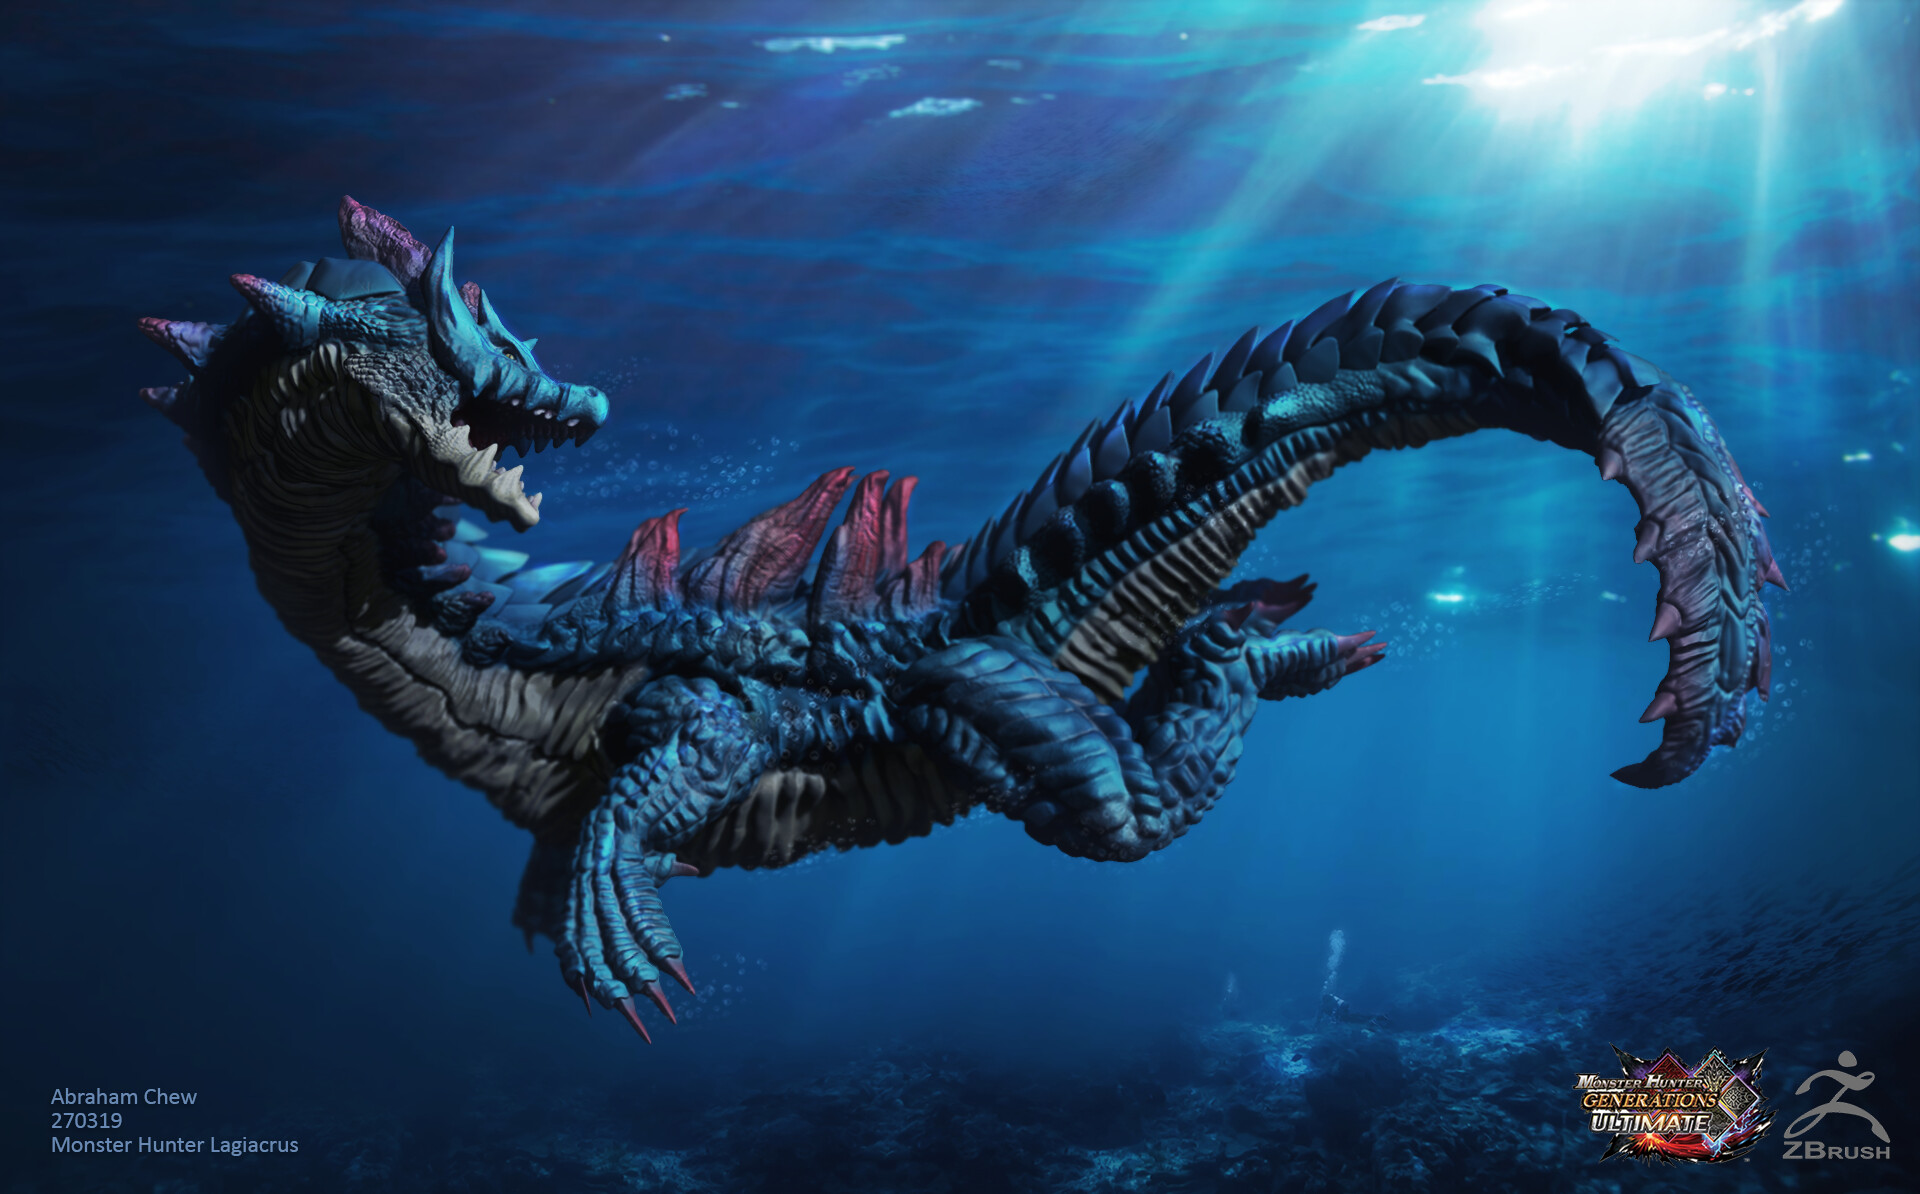 Abraham Chew Zbrush Monster Hunter Lagiacrus Feared by sailors as 'the lords of the seas', they store enough electricity in their spinal organs to make the. abraham chew zbrush monster hunter